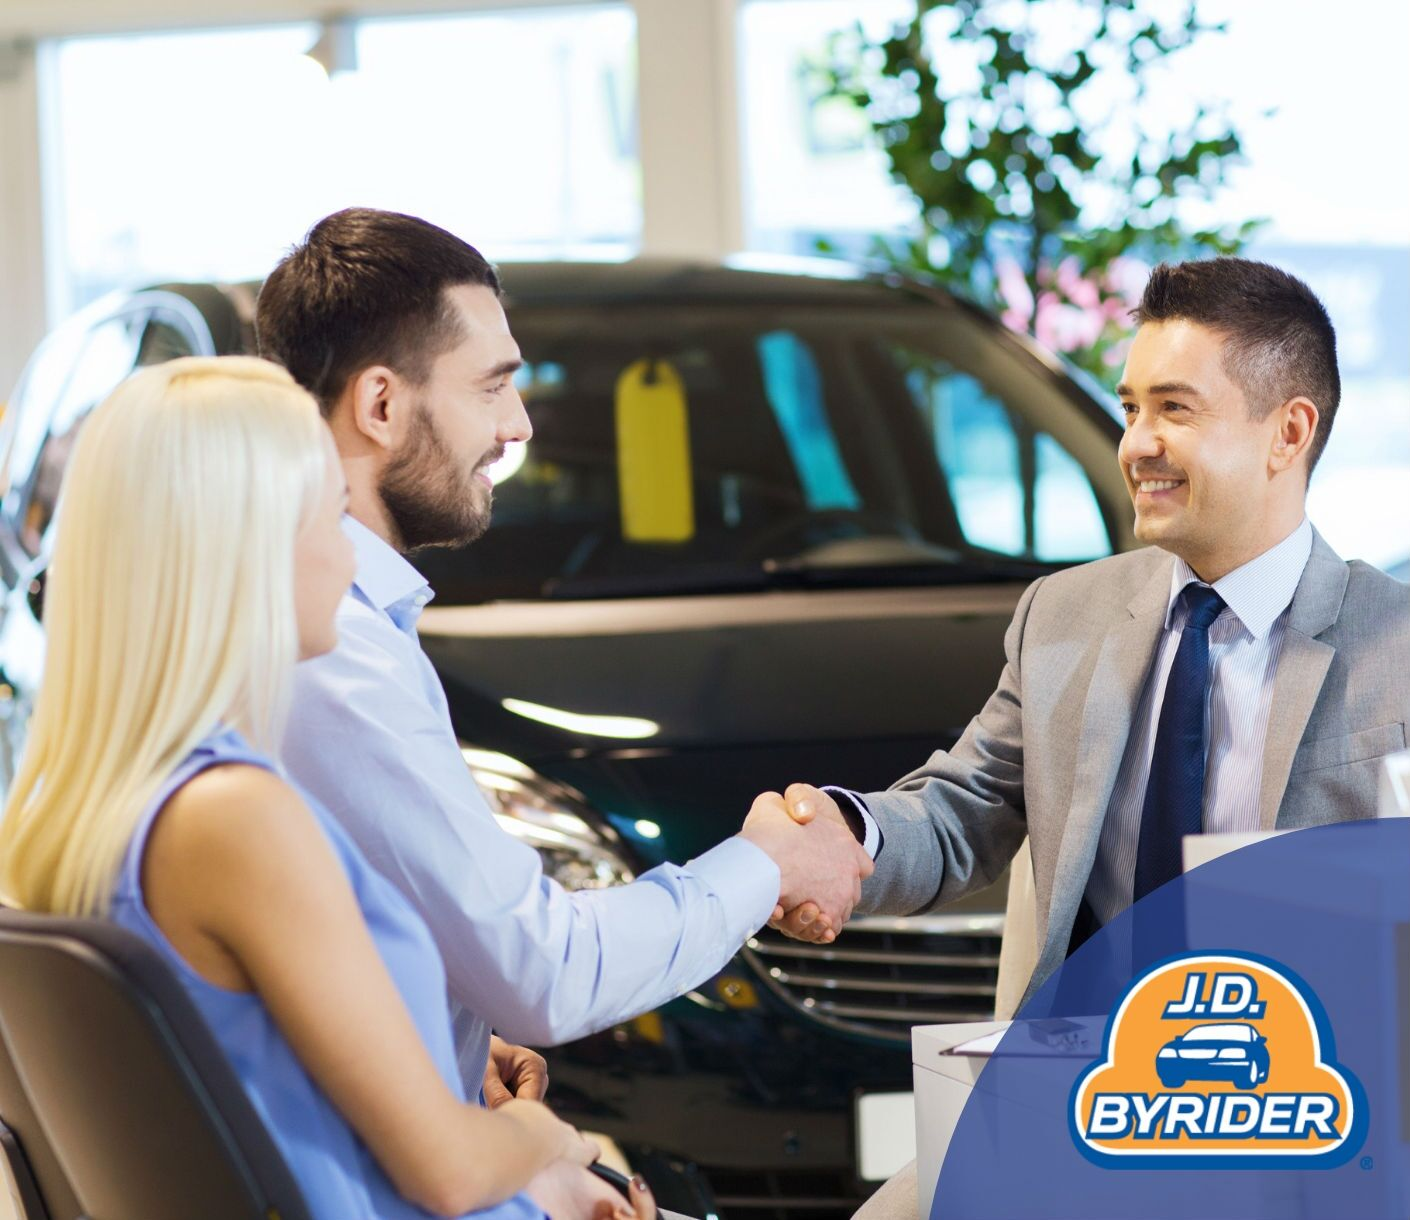 couple shaking hands with car salesman with J.D. Byrider logo in the corner